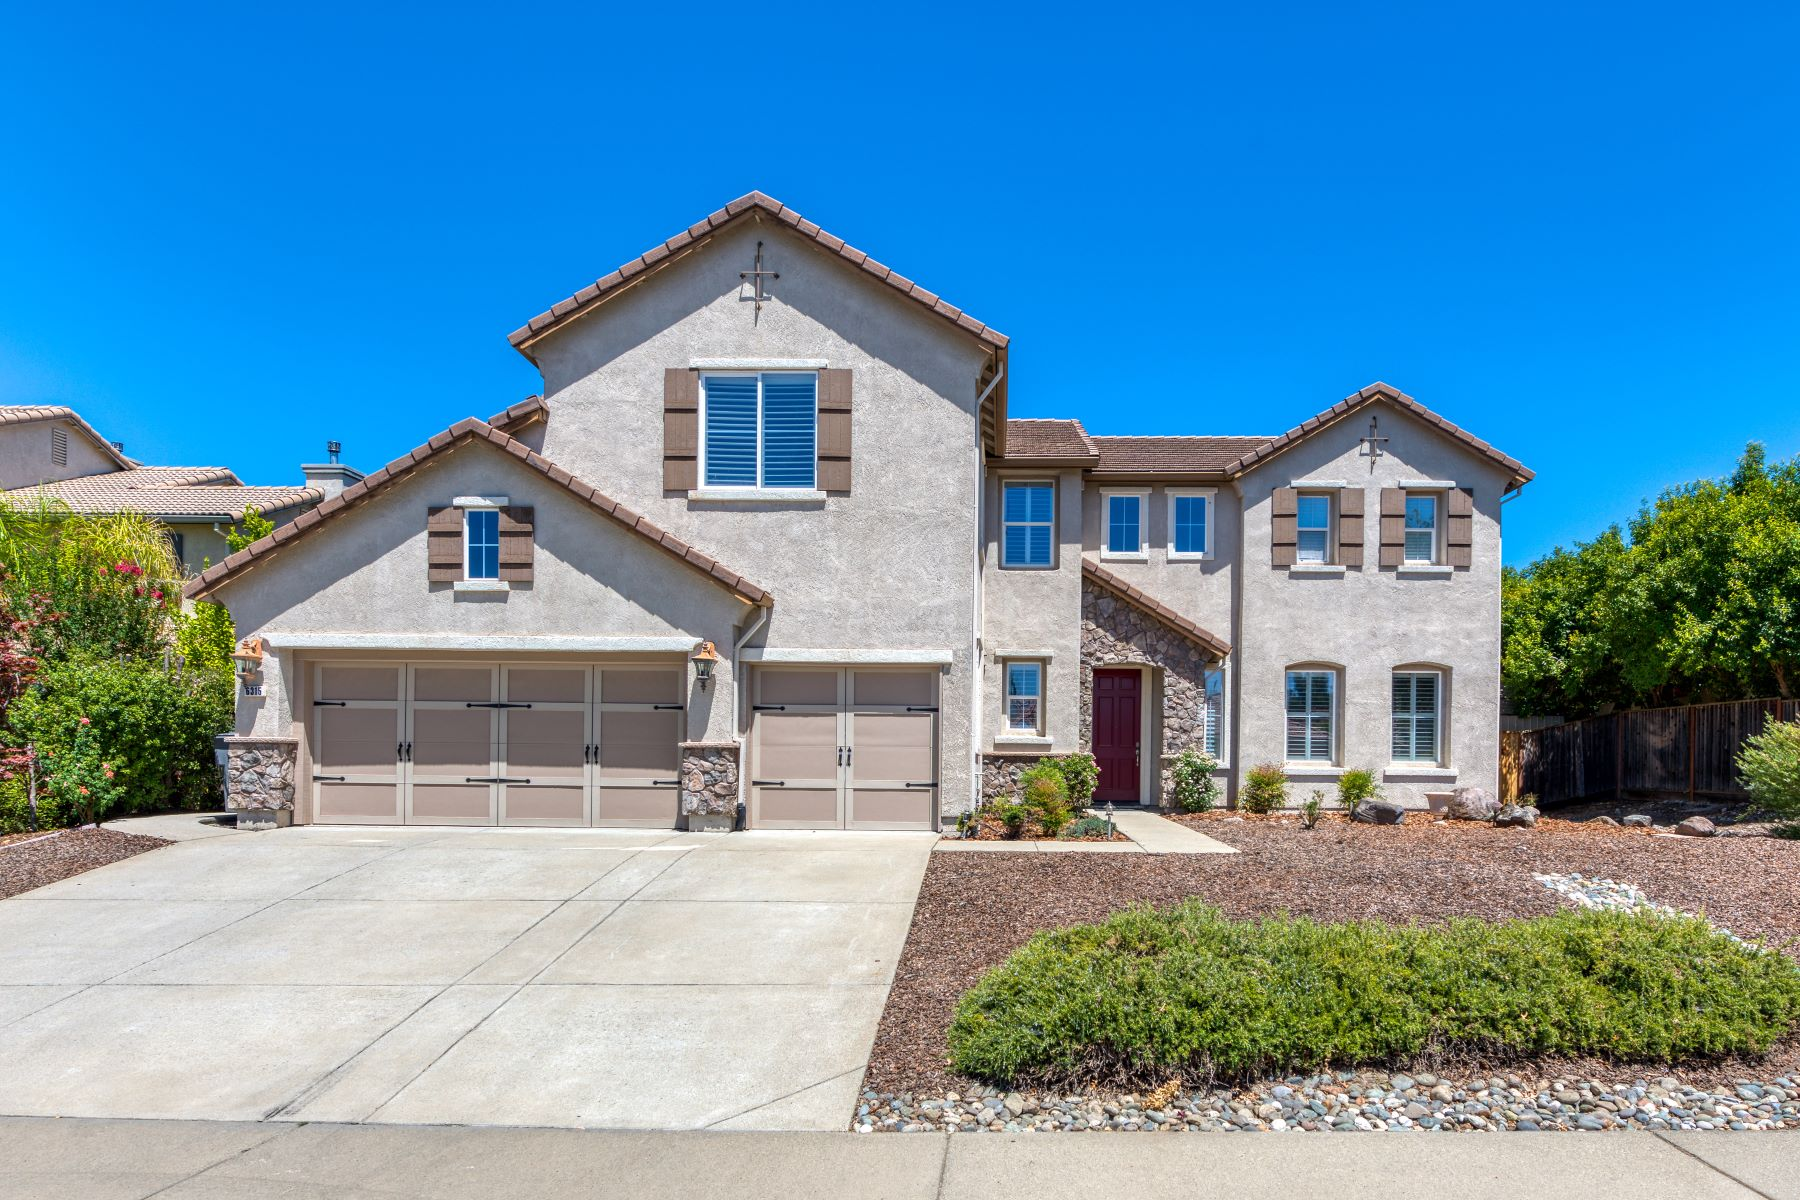 Single Family Homes for Active at 6315 Galaxy Ln, Rocklin, CA 95677 6315 Galaxy Ln Rocklin, California 95677 United States